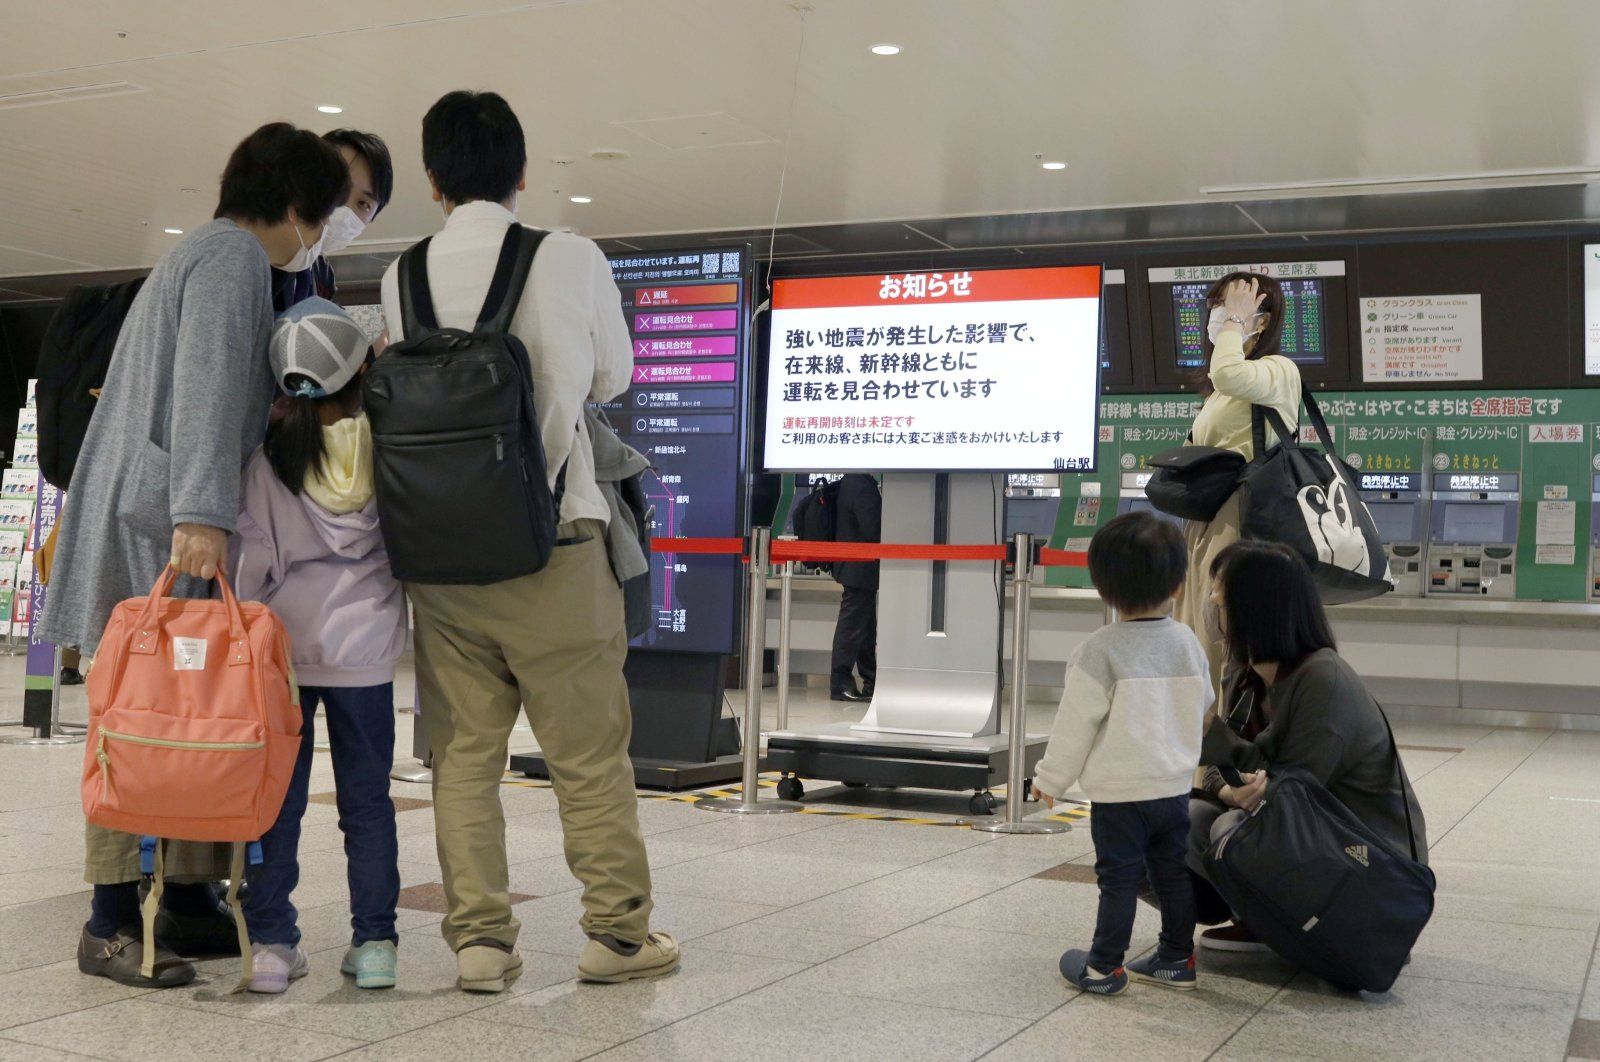 People gather around a ticket gate as train services are suspended following an earthquake in Sendai, Miyagi prefecture, Japan, May 1, 2021. (Kyodo via Reuters)